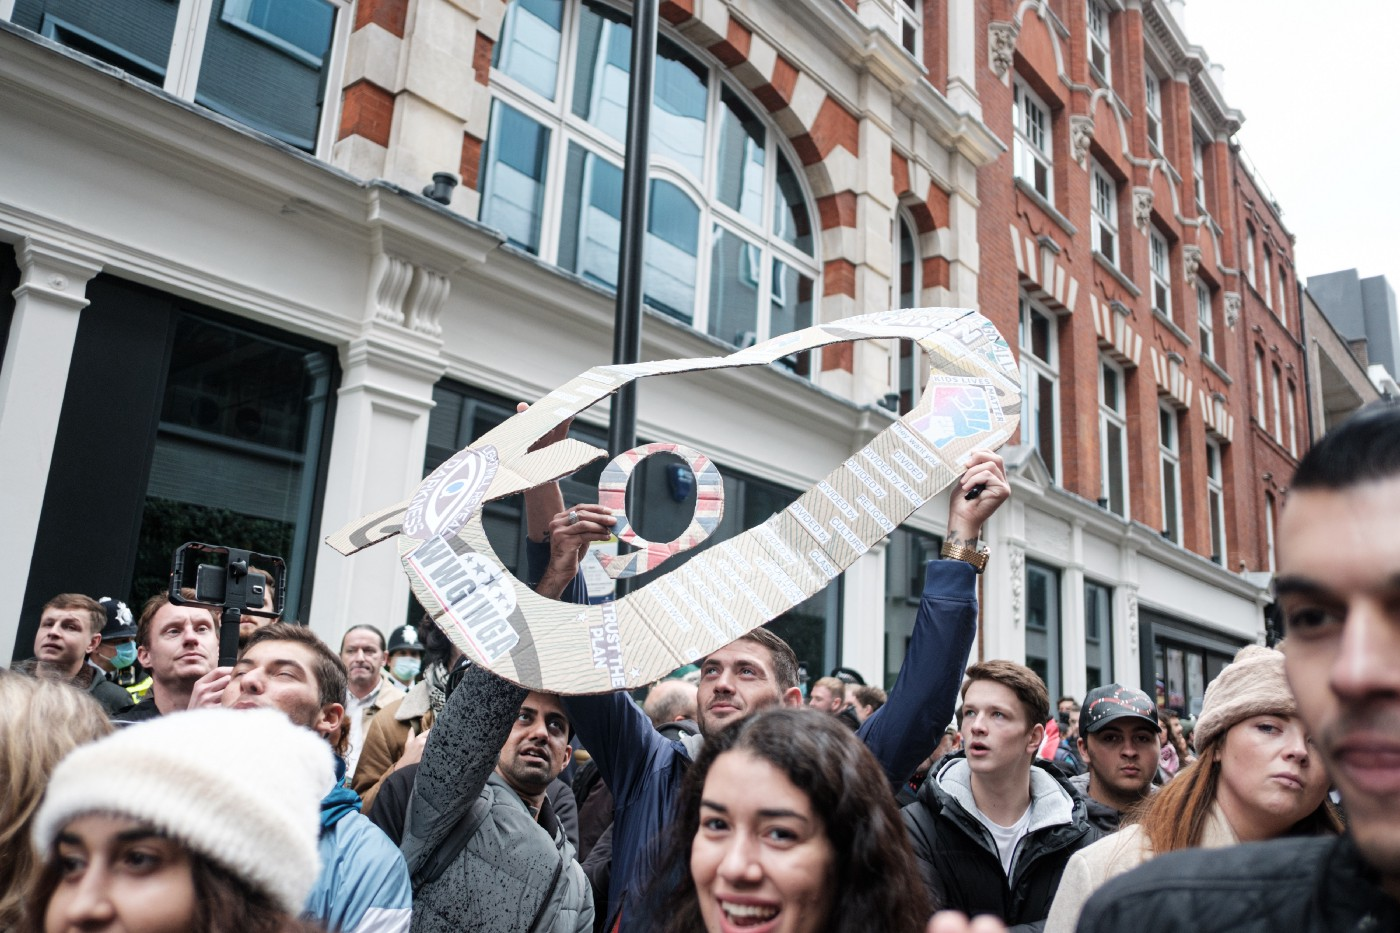 Protestors march carrying the symbols of the QAnon conspiracy group.